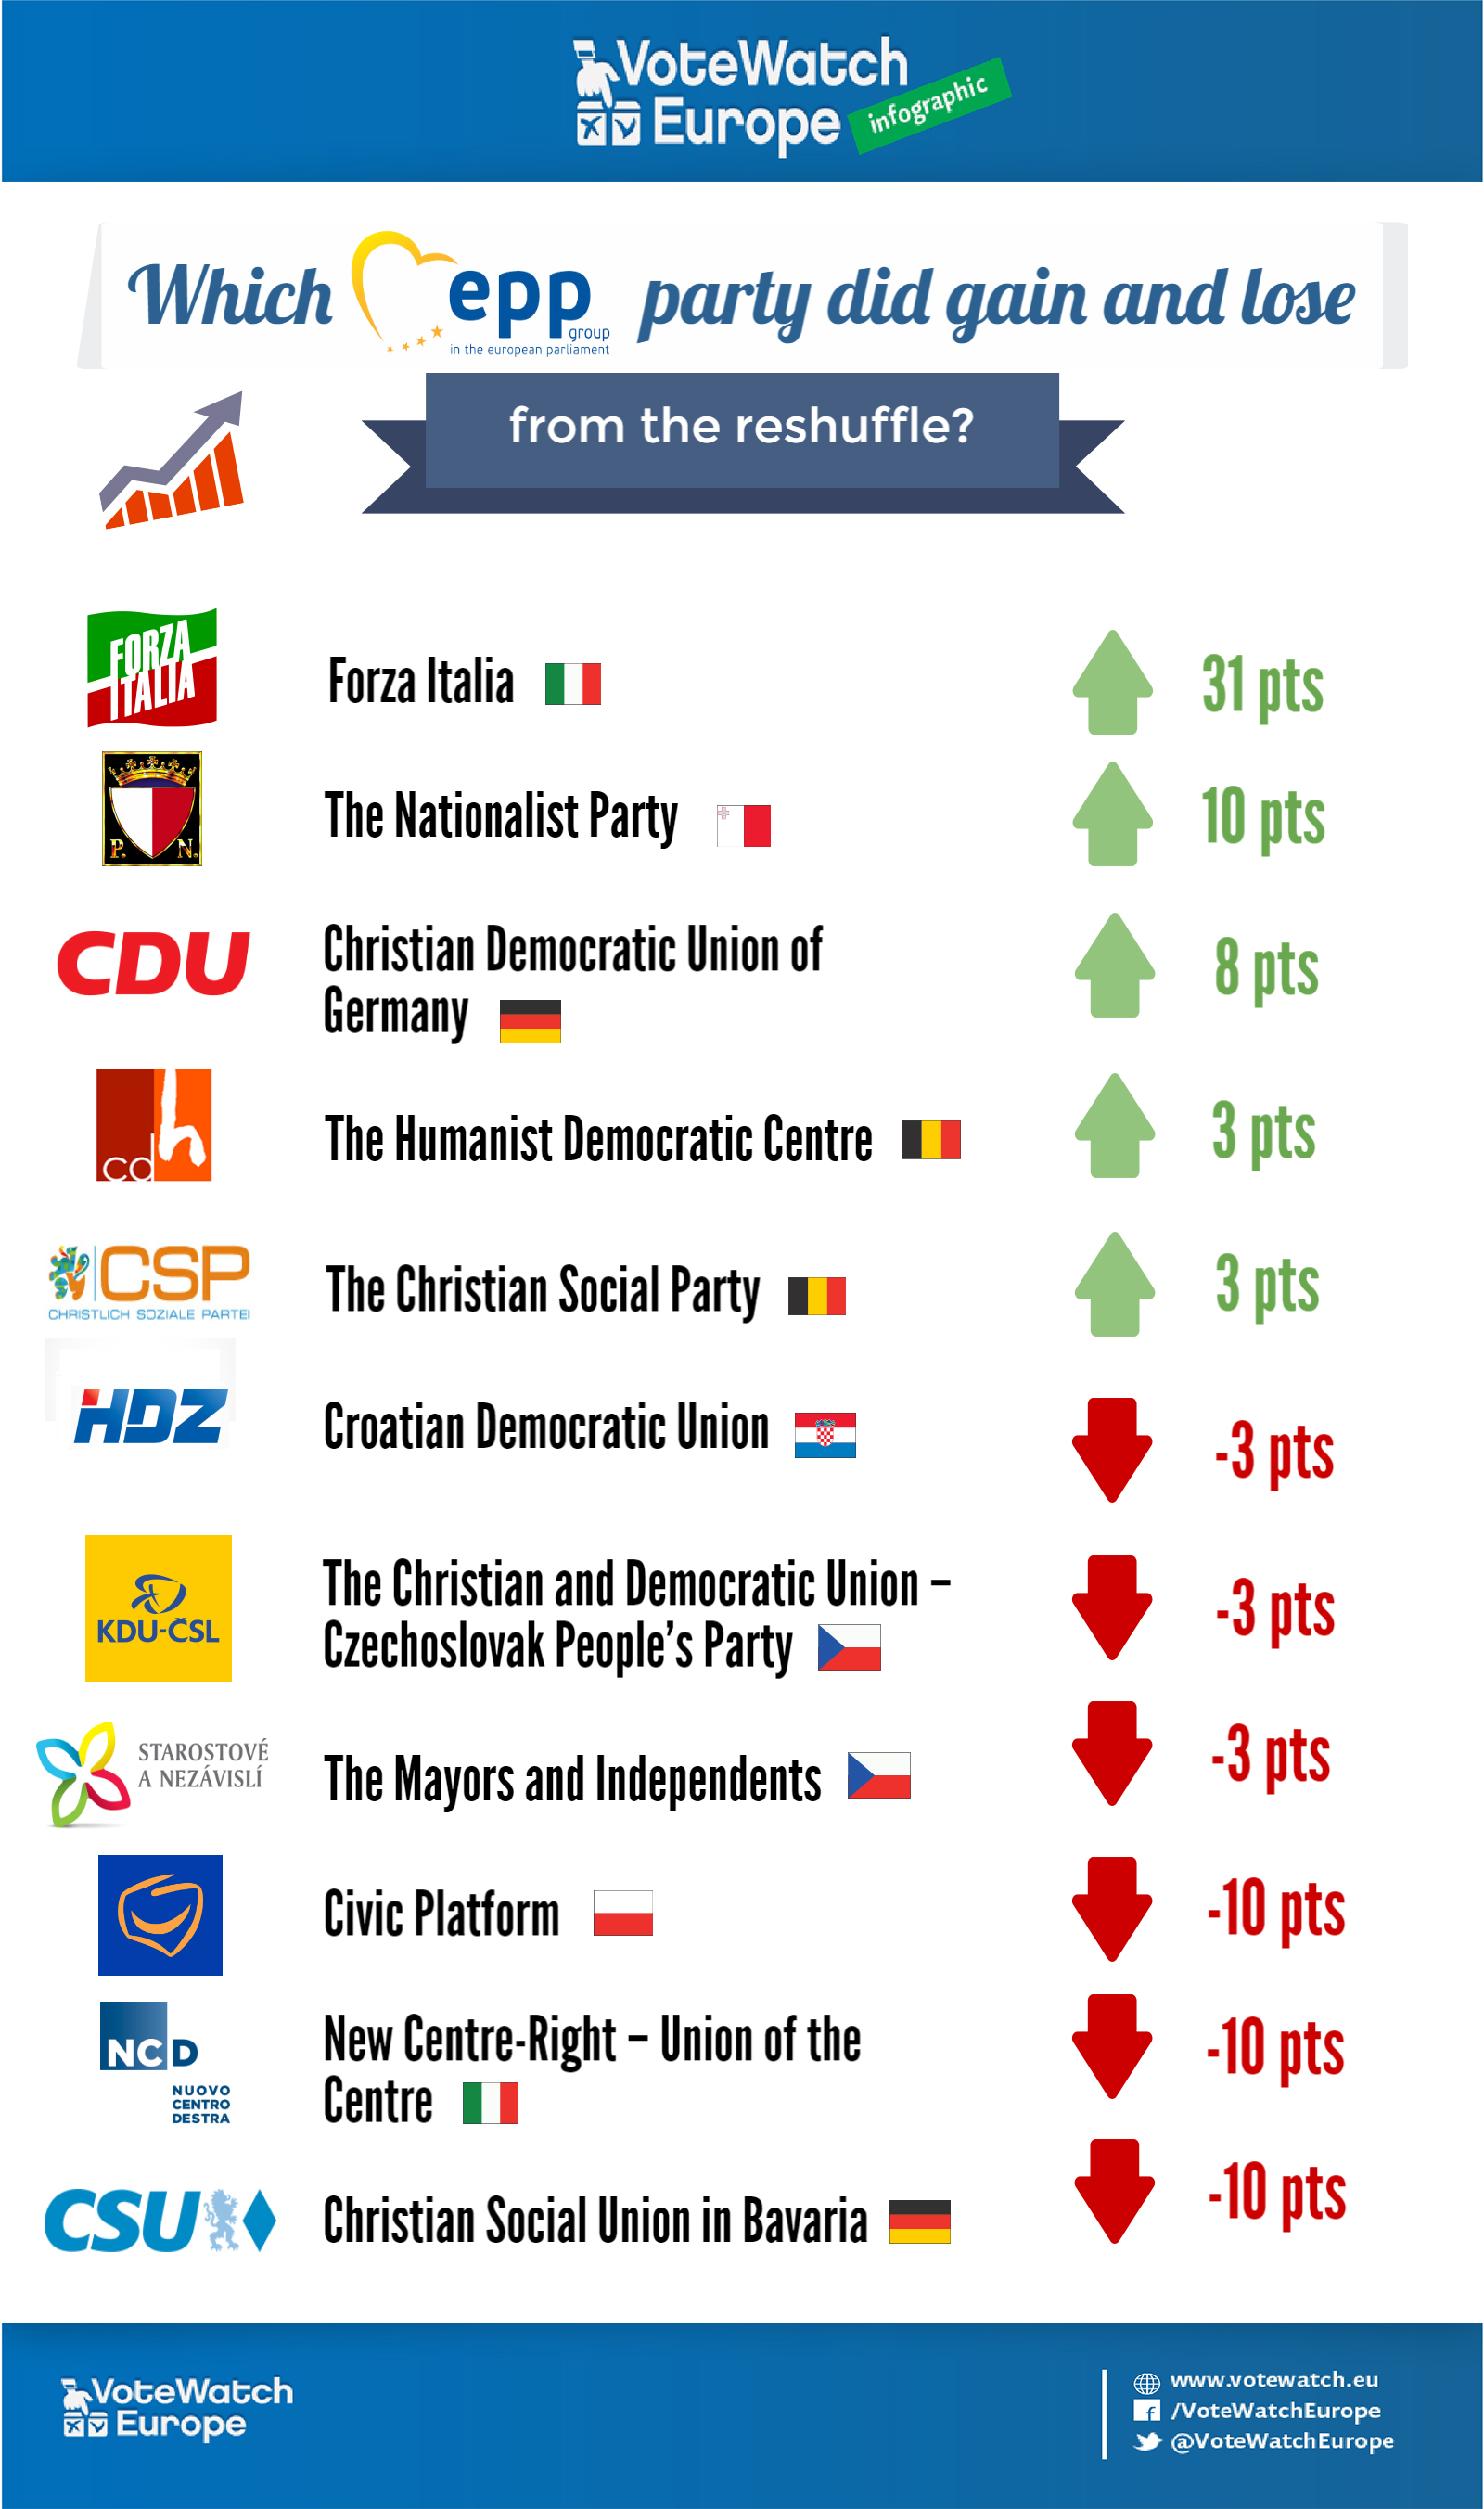 EPP PARTIES AFTER RESHUFFLE (2)